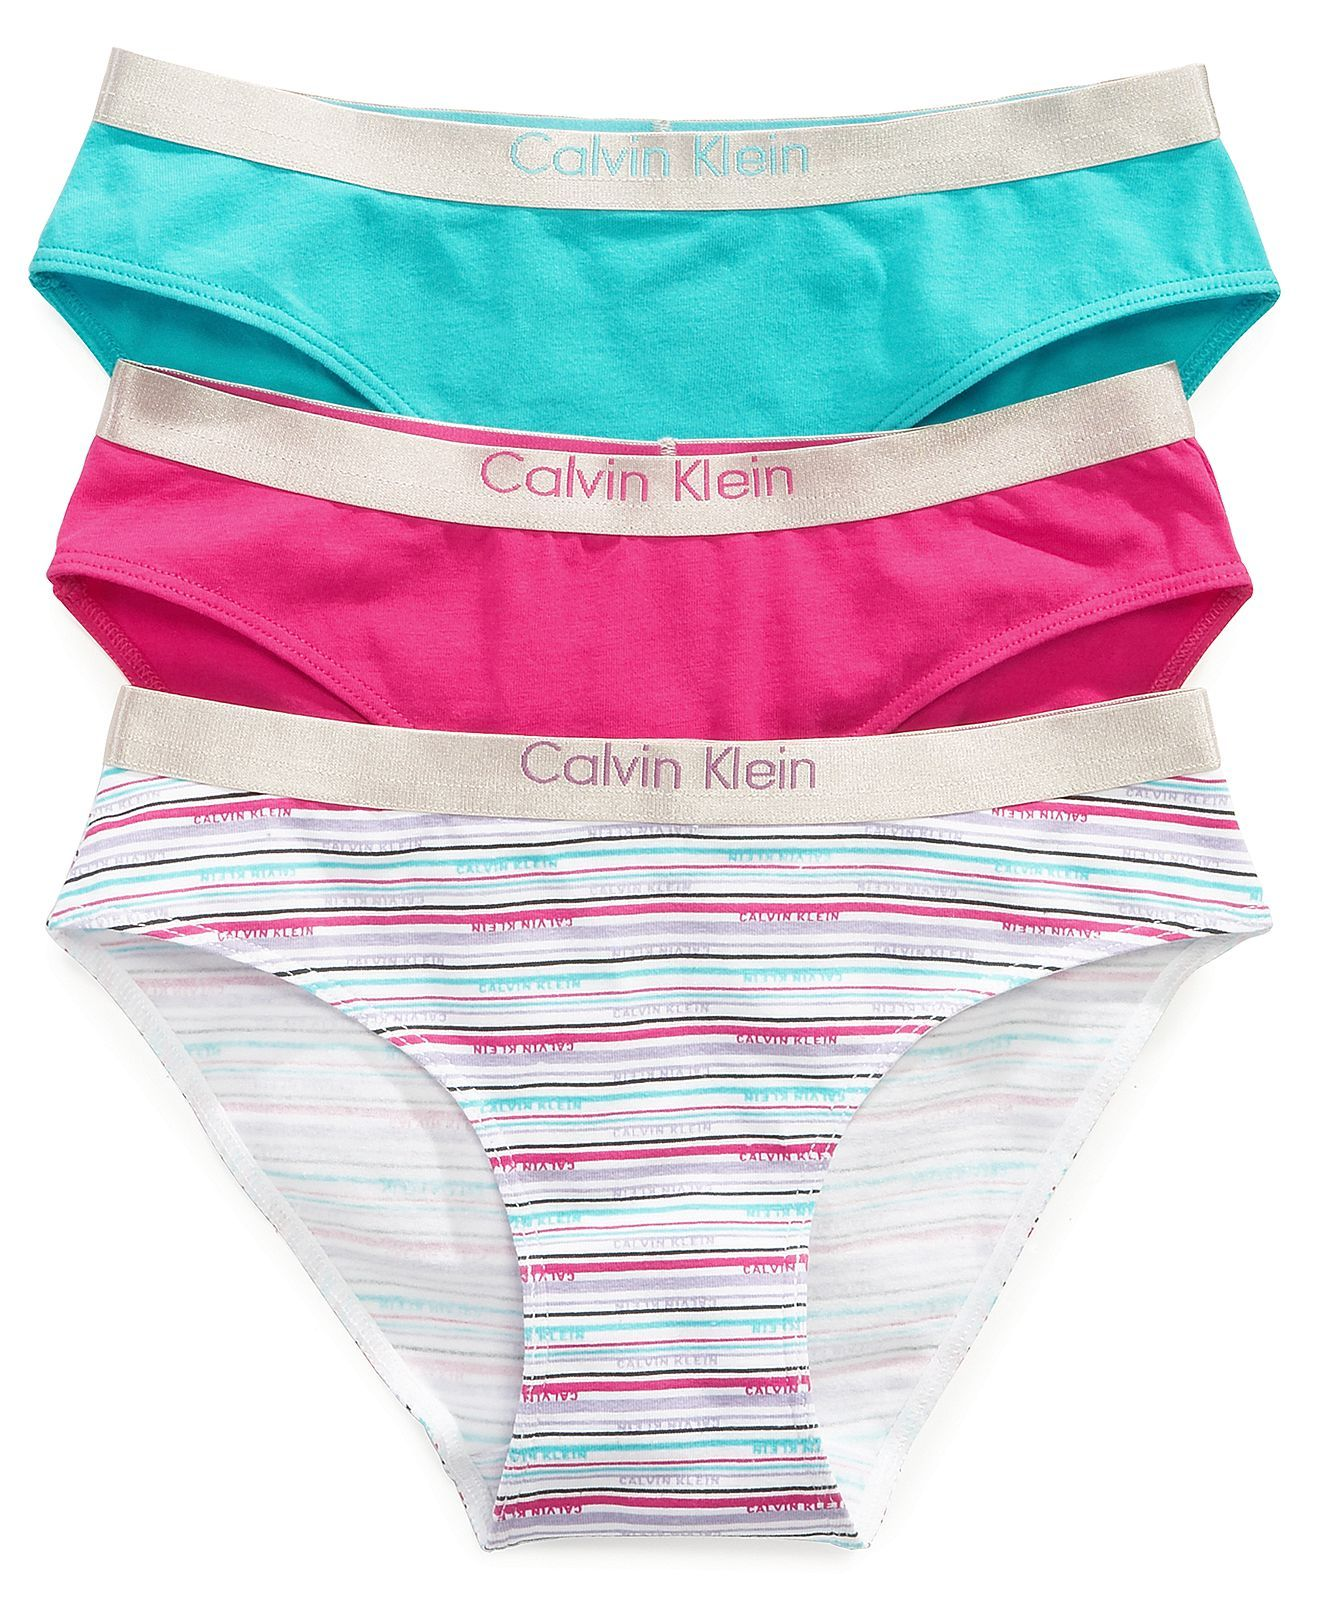 9bb8d170dae15 Calvin Klein Kids Underwear, Girls 3-Pack Bikini Briefs - Kids - Macy's